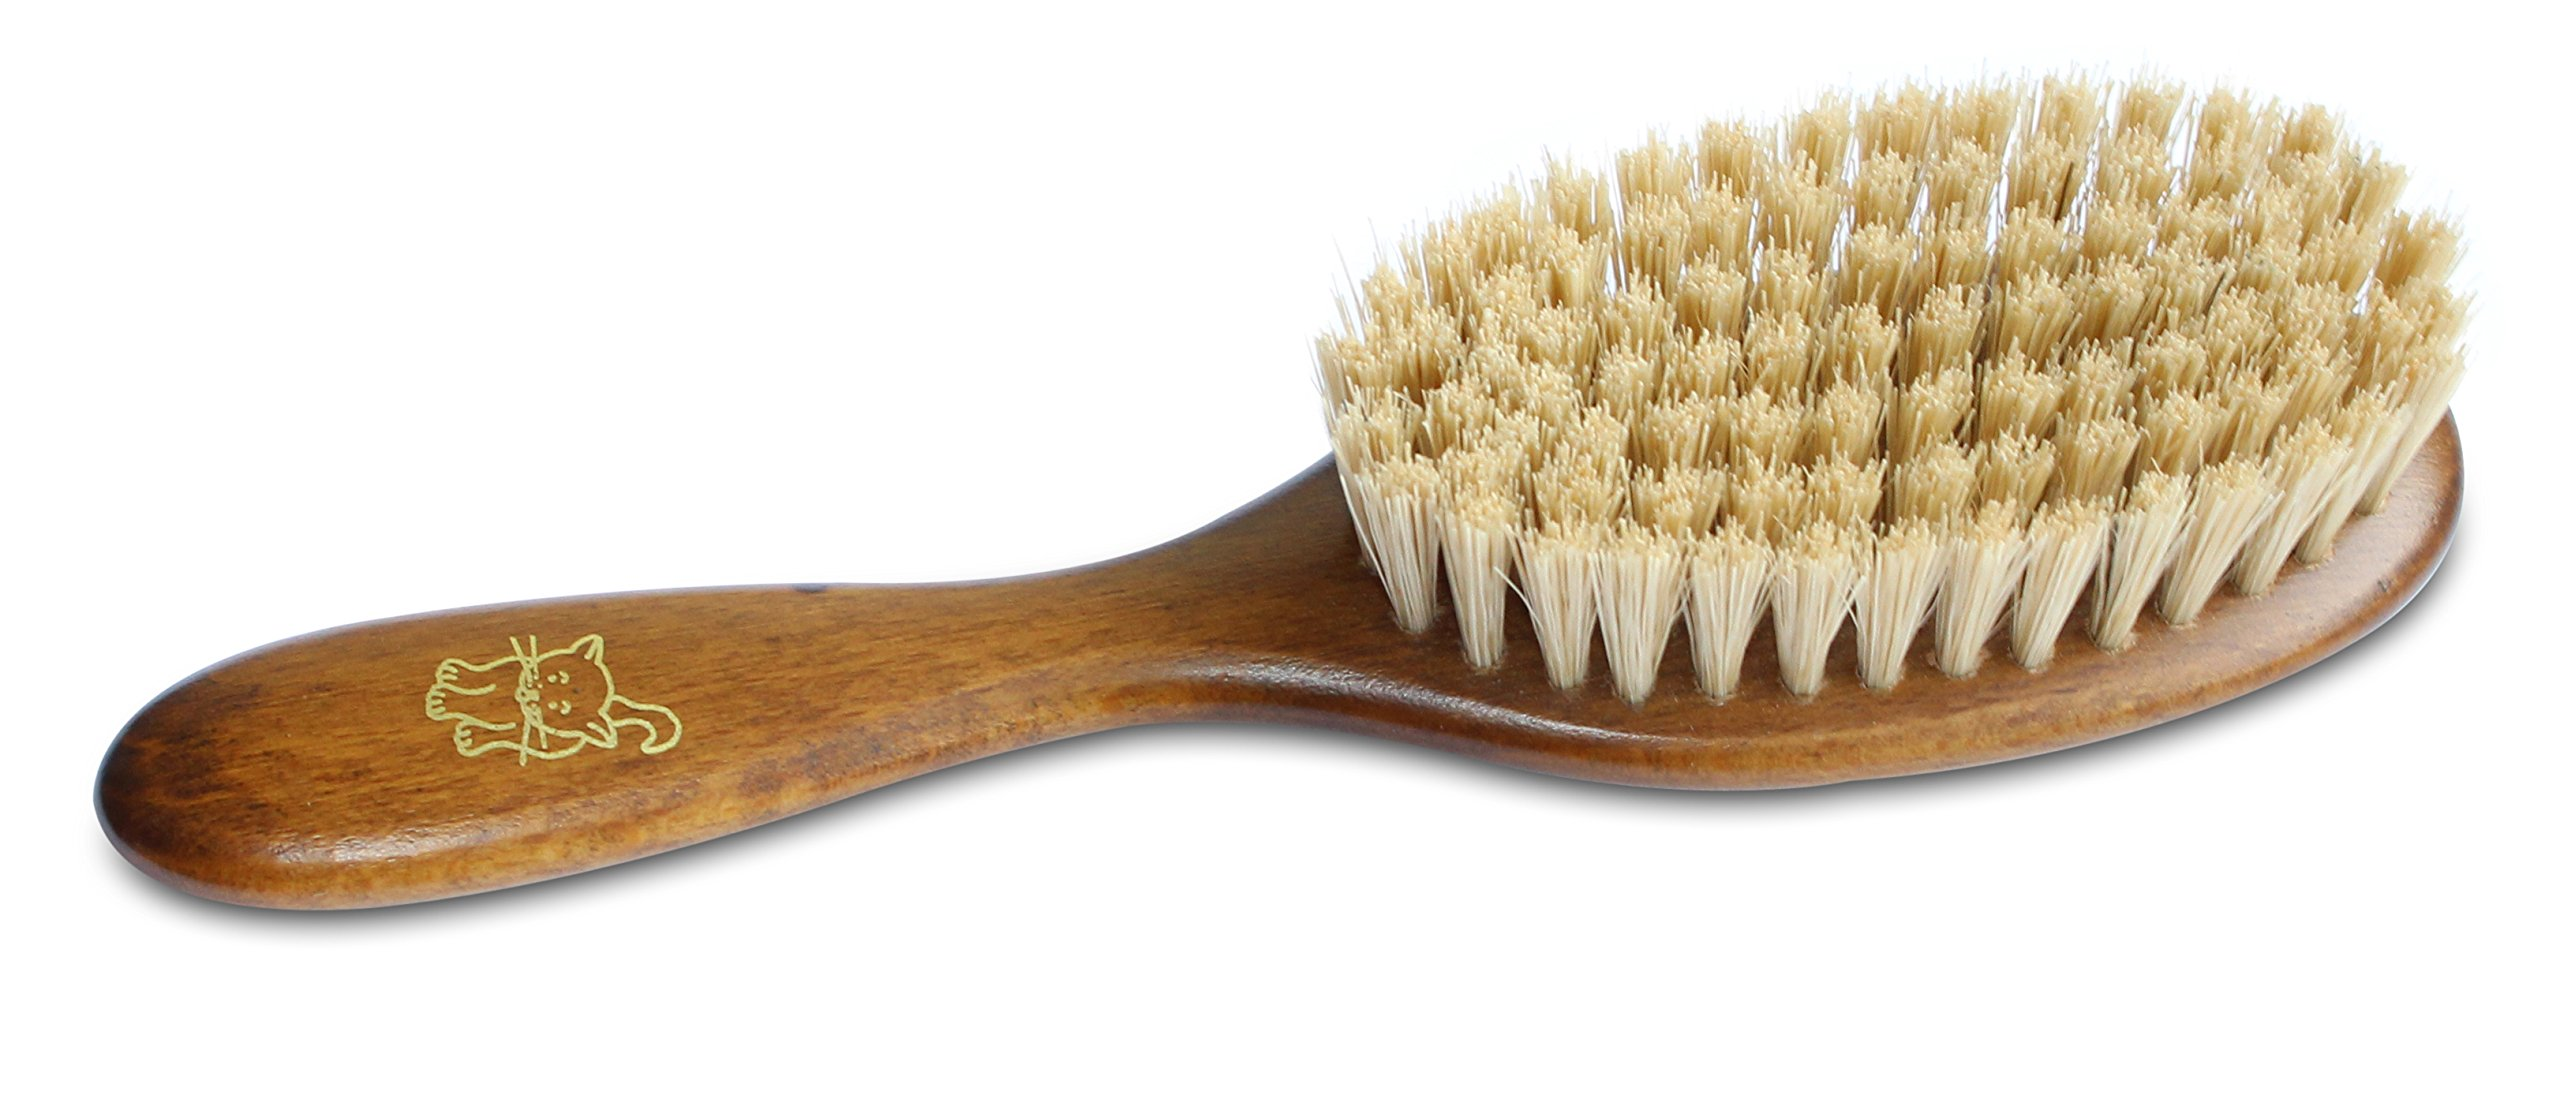 mars boar bristle cat hair brush